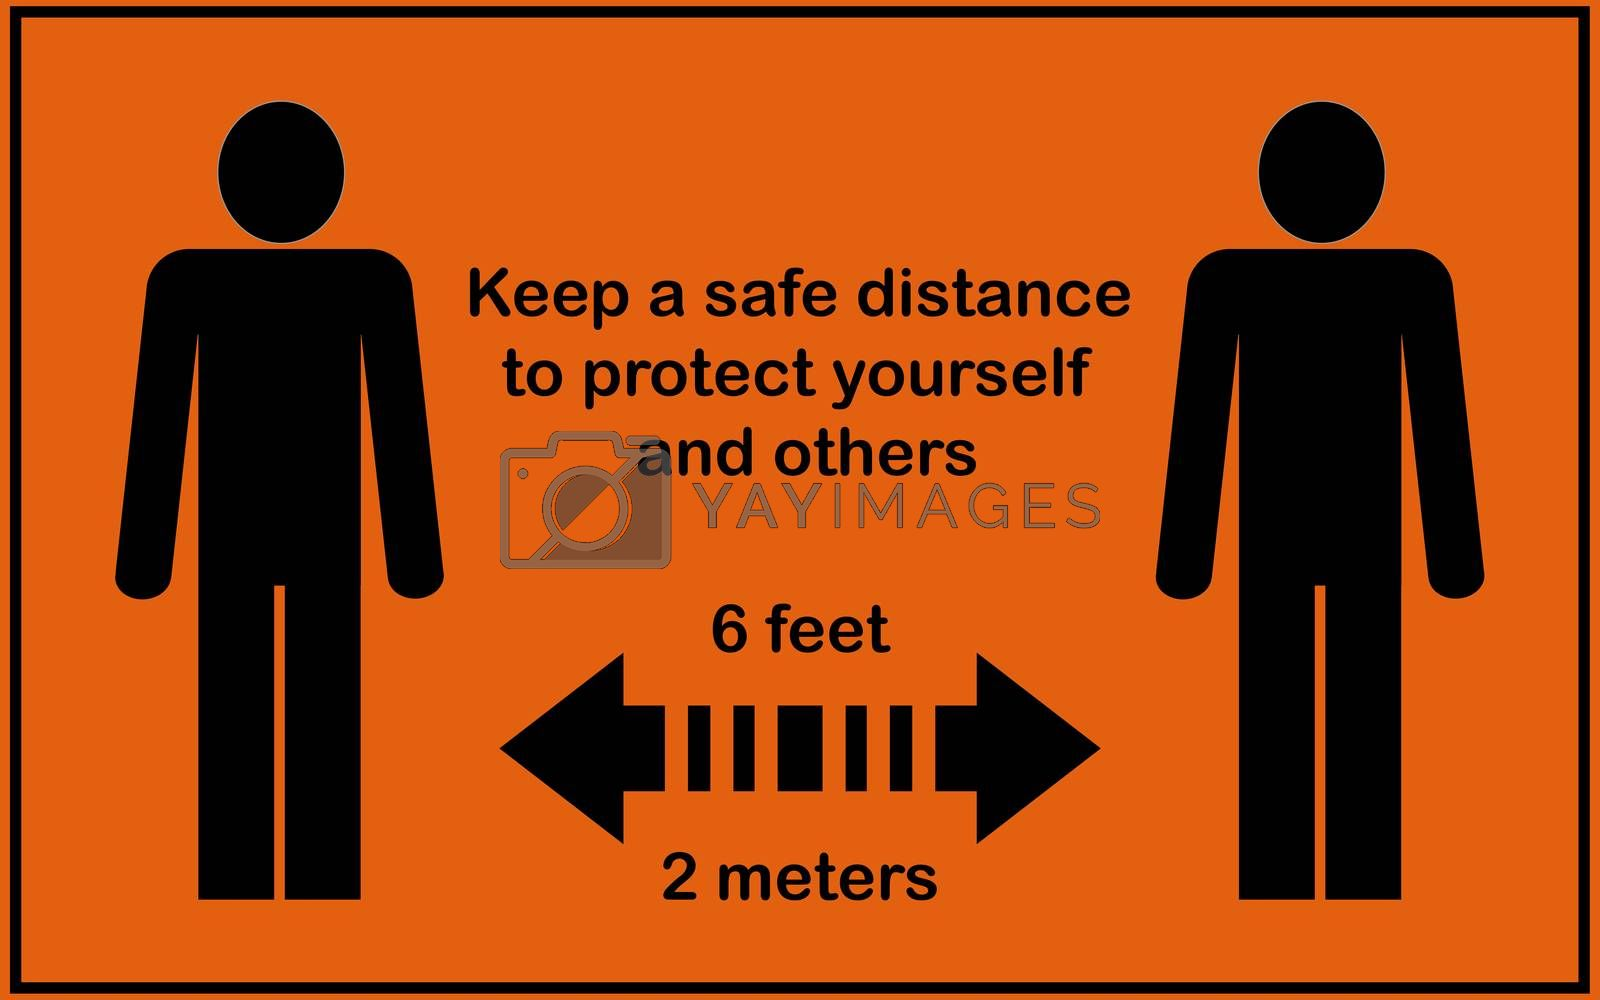 Social distance sign board with two persons , arrows, text with 6 feet and 2 meters. Orange background